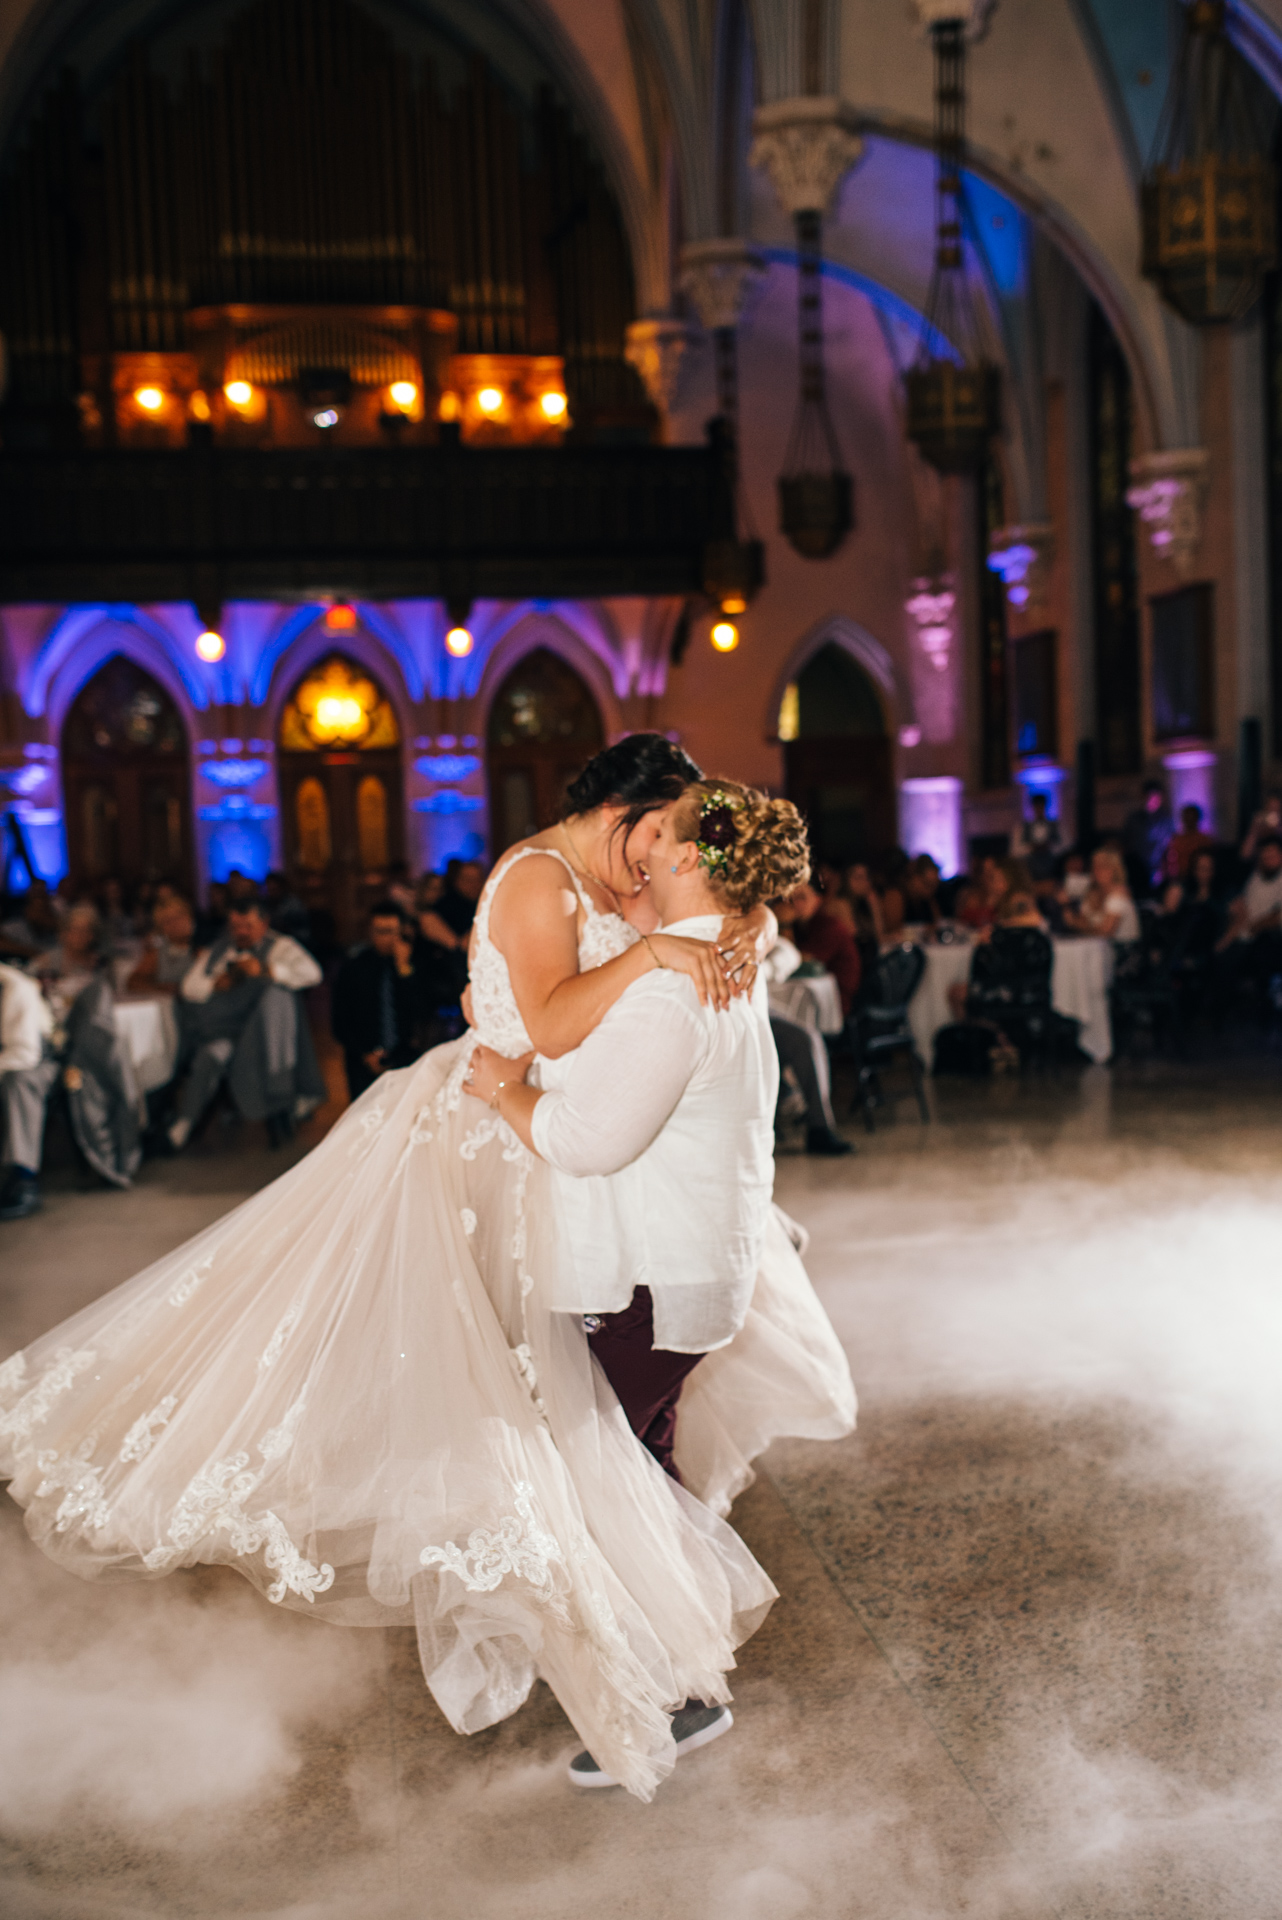 LGBTQ Wedding Dancing on a Cloud